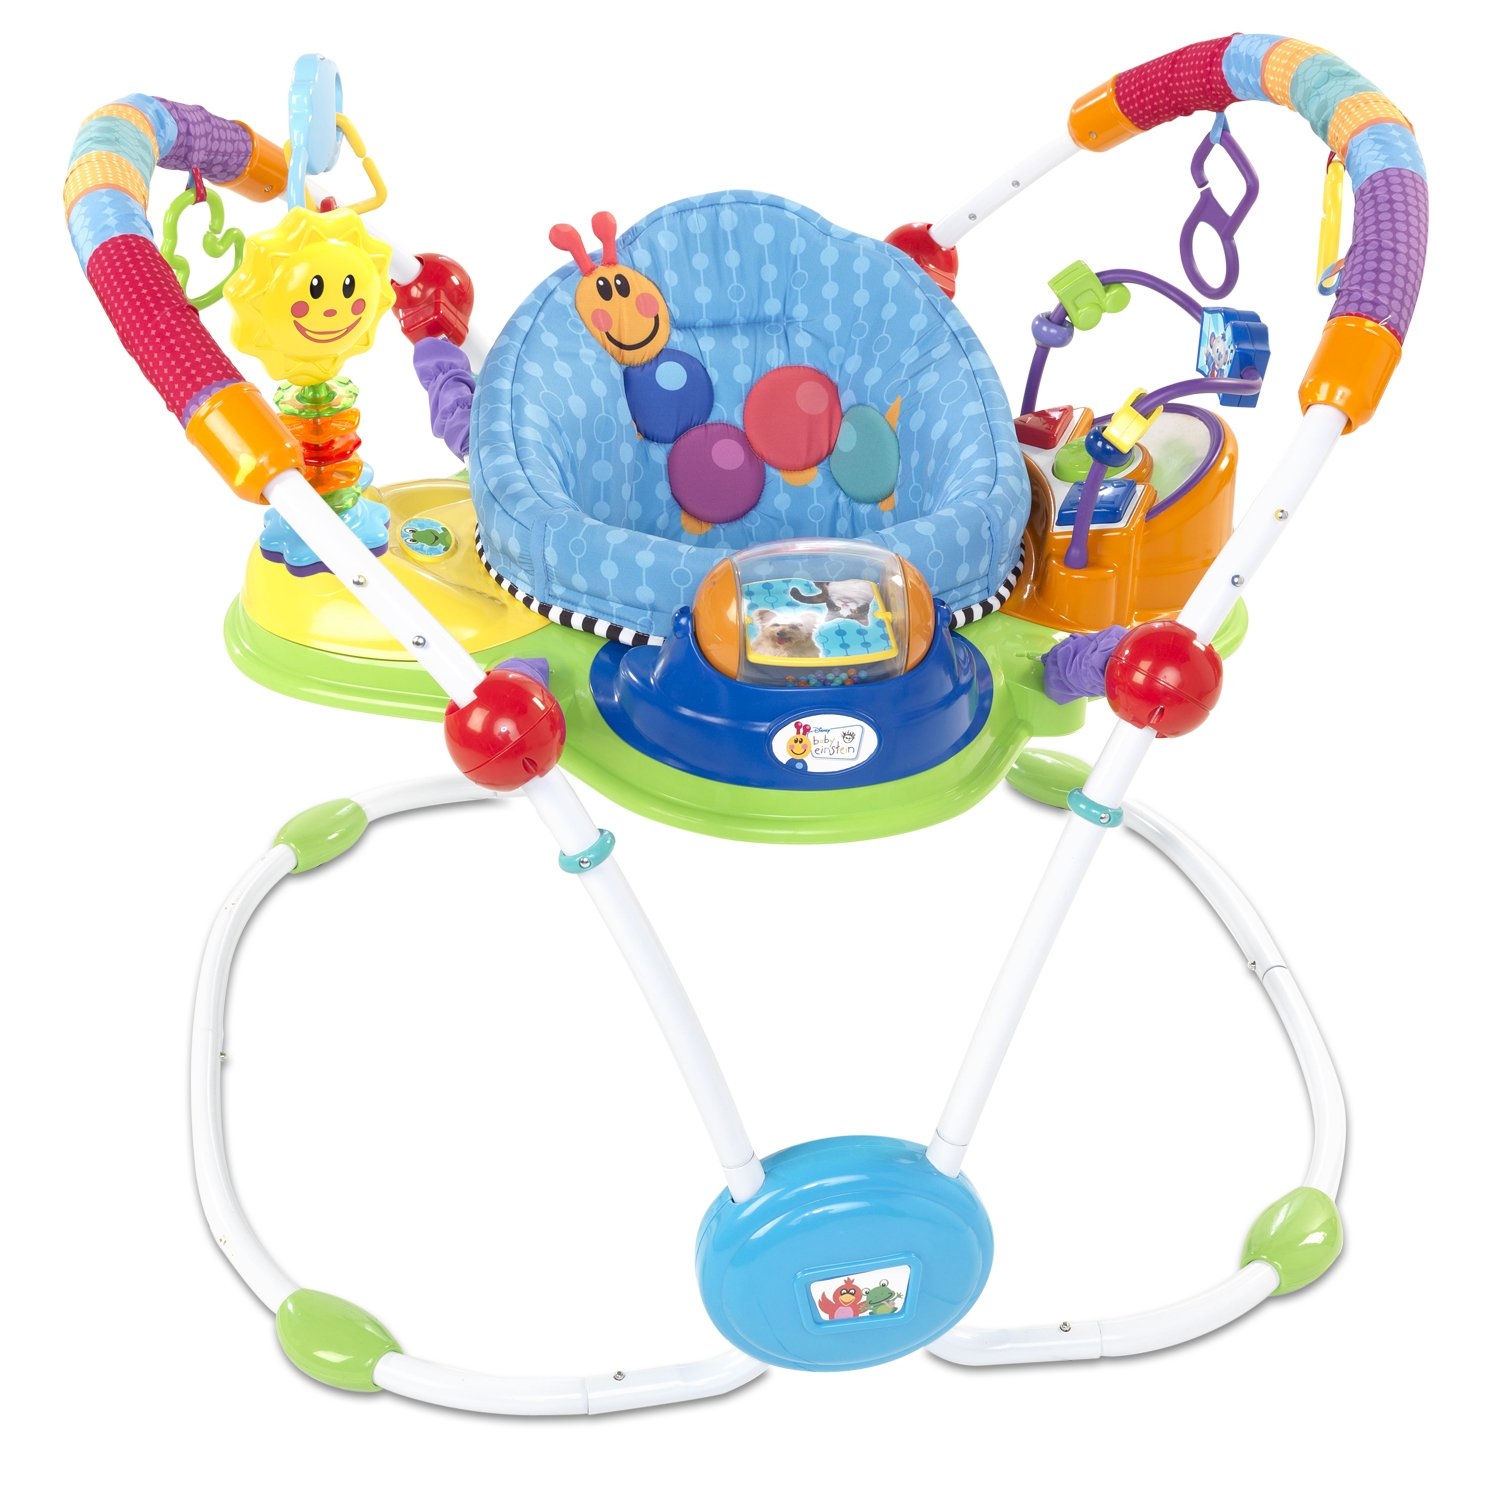 Baby Exersaucer Bouncer